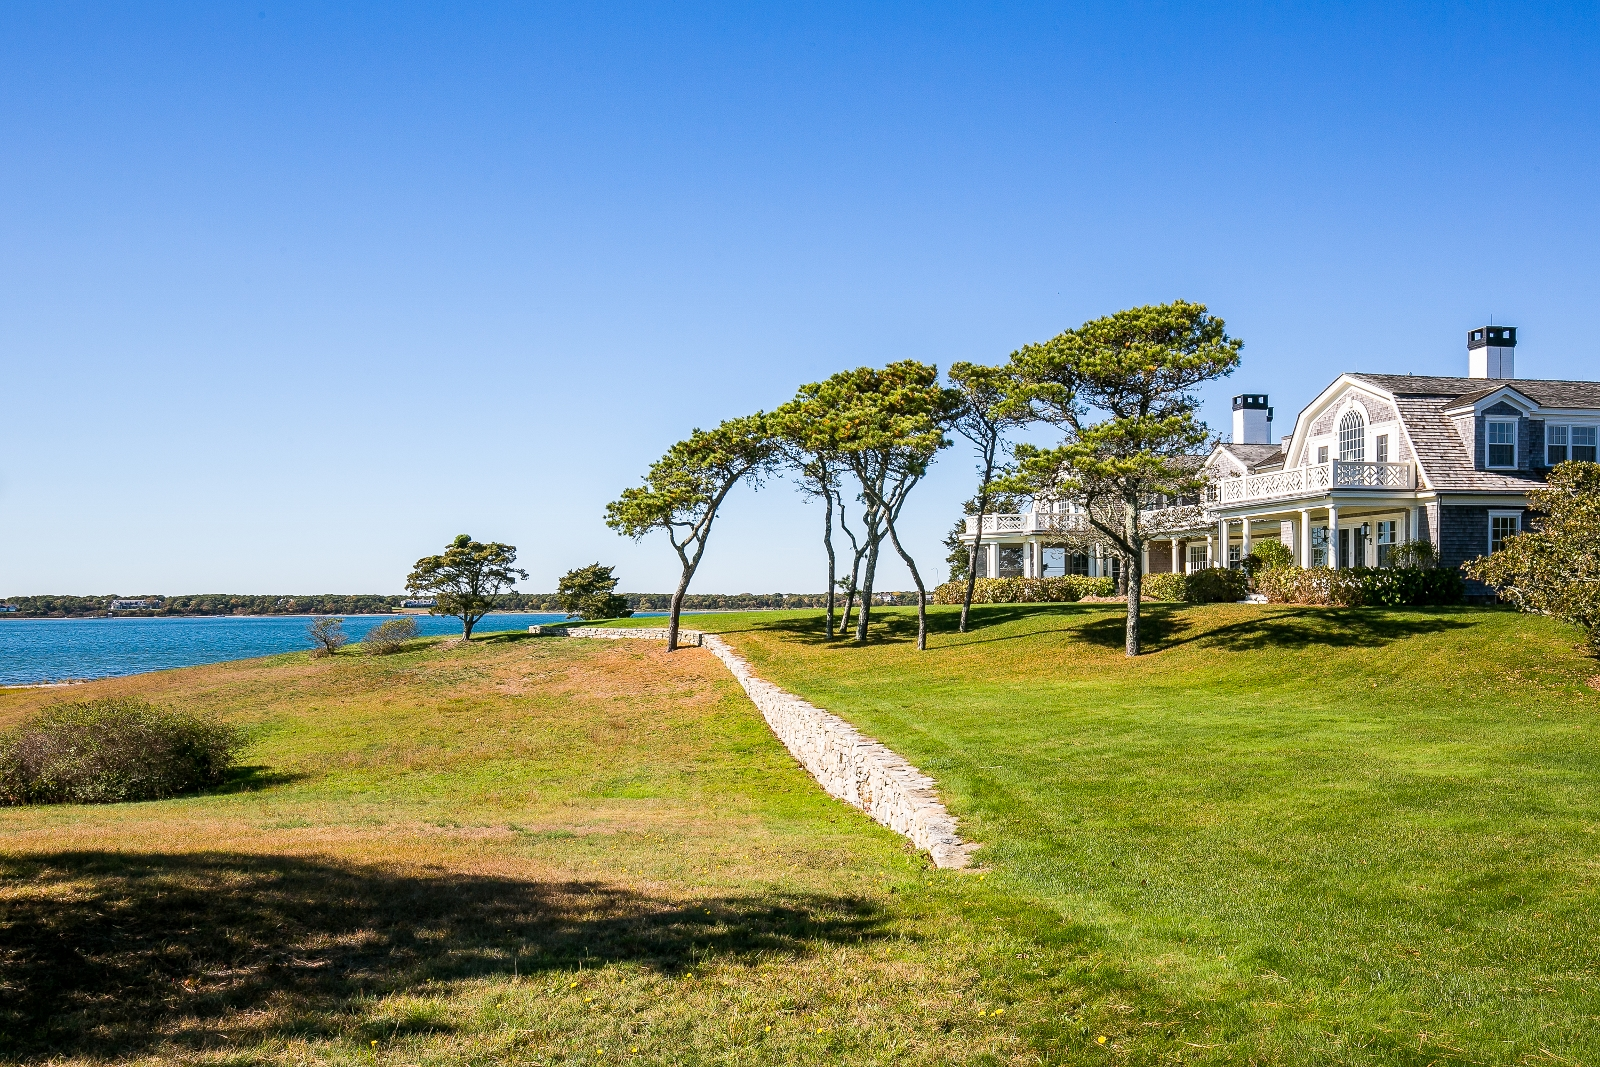 Moradia para Venda às Magnificent Chappy estate overlooking Katama Bay 22 Lelands Path Edgartown, Massachusetts 02539 Estados Unidos